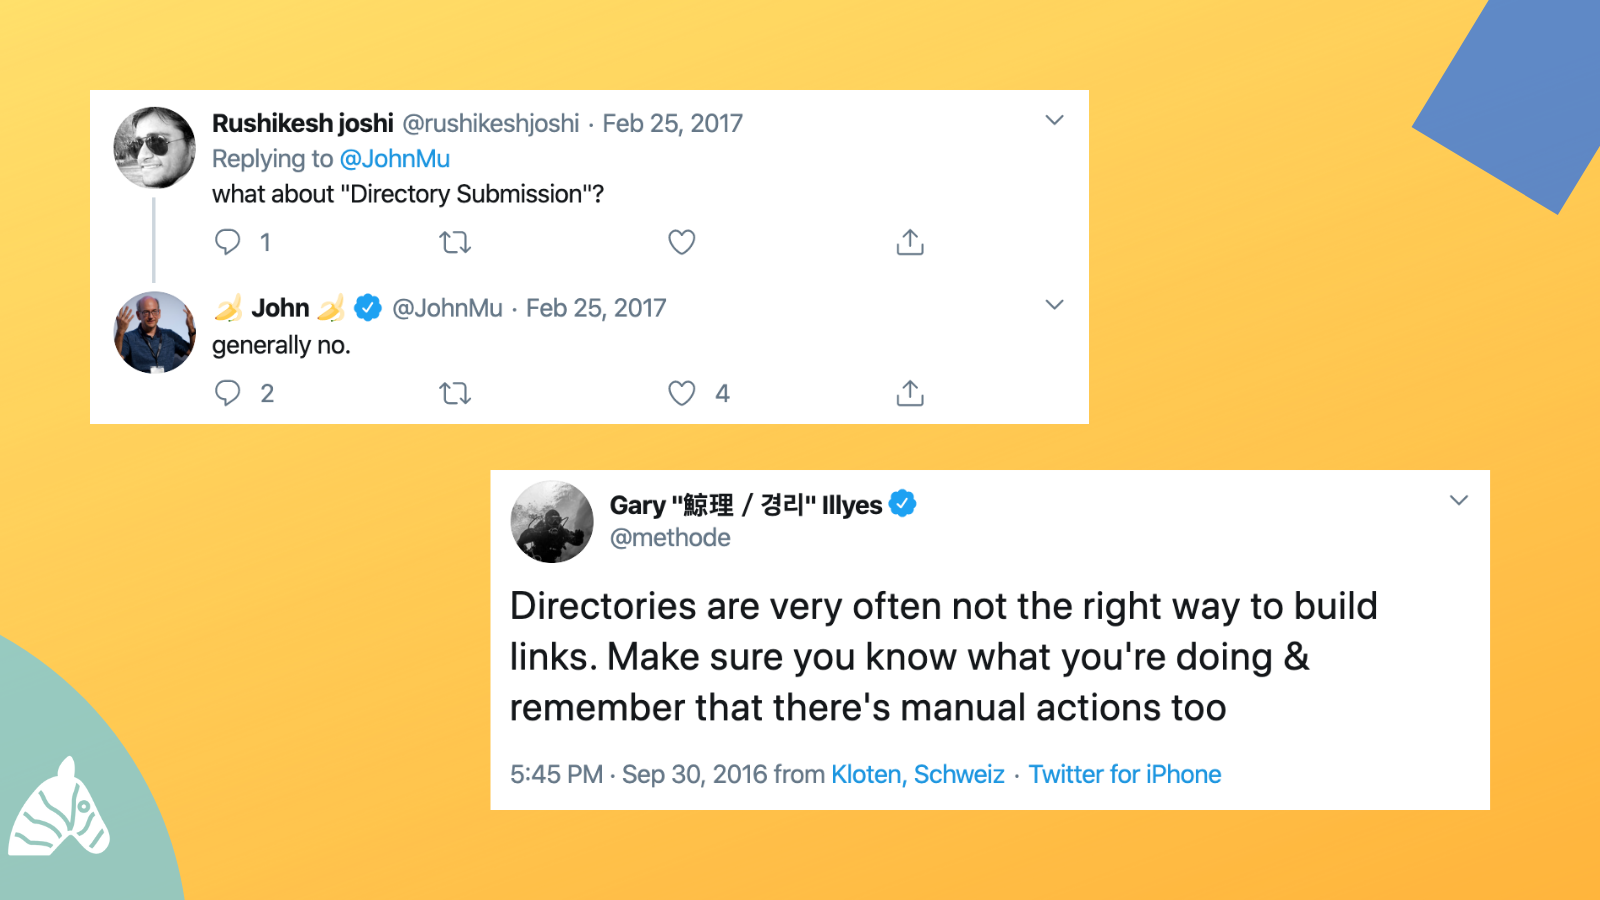 Twitter conversation about types of links and directory links